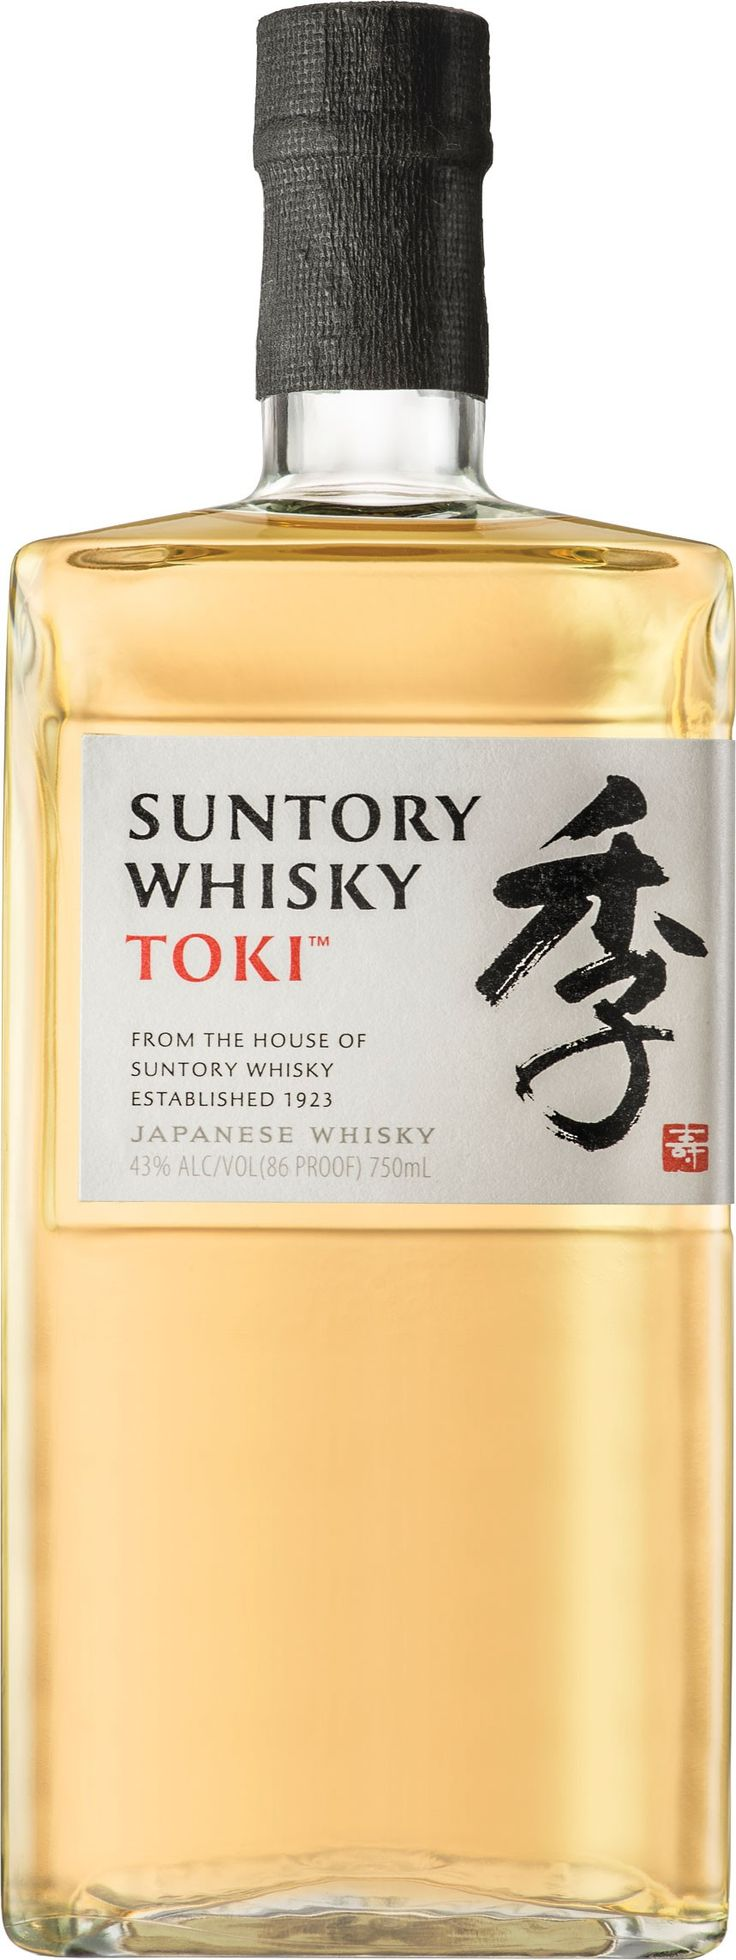 This unique blended whisky features malt whisky from Hakushu and Yamazaki distilleries, as well as heavy-type grain whisky from Chita Distillery.